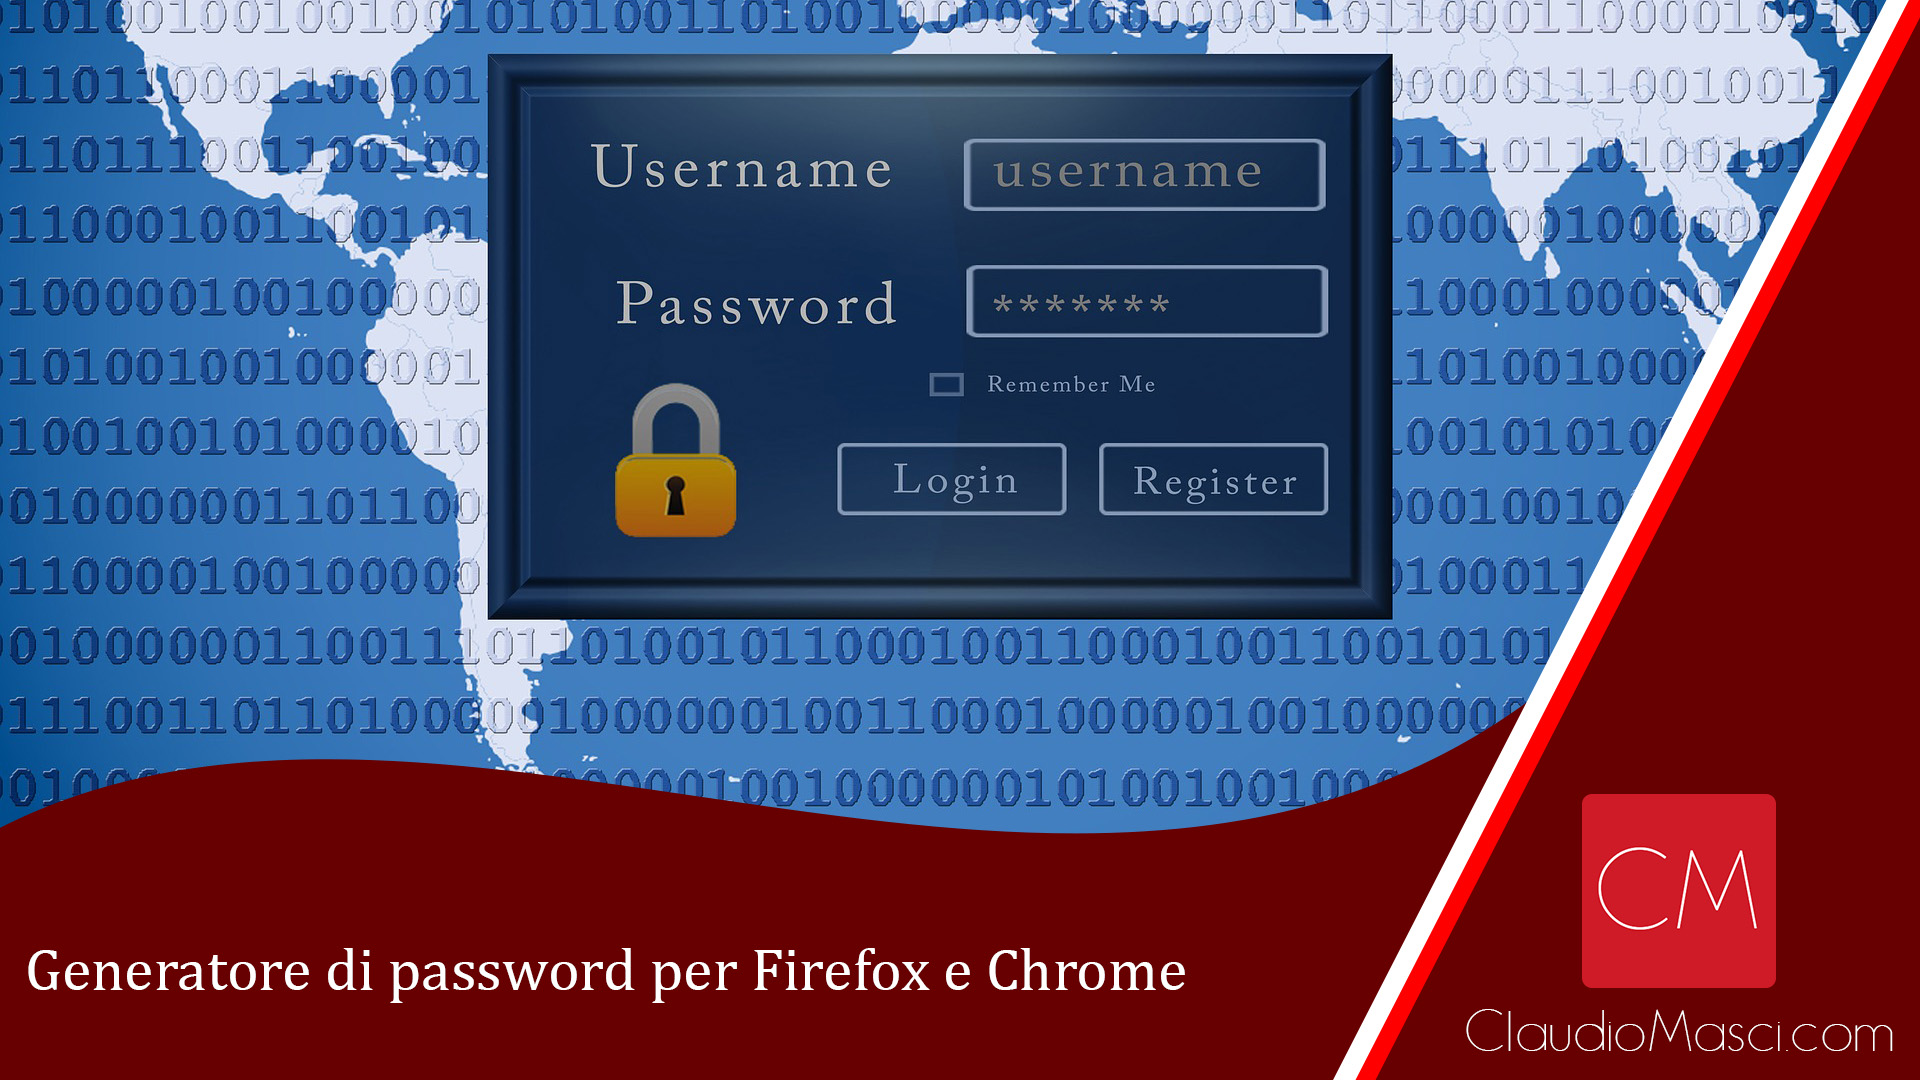 Generatore di password per Mozilla Firefox e Google Chrome